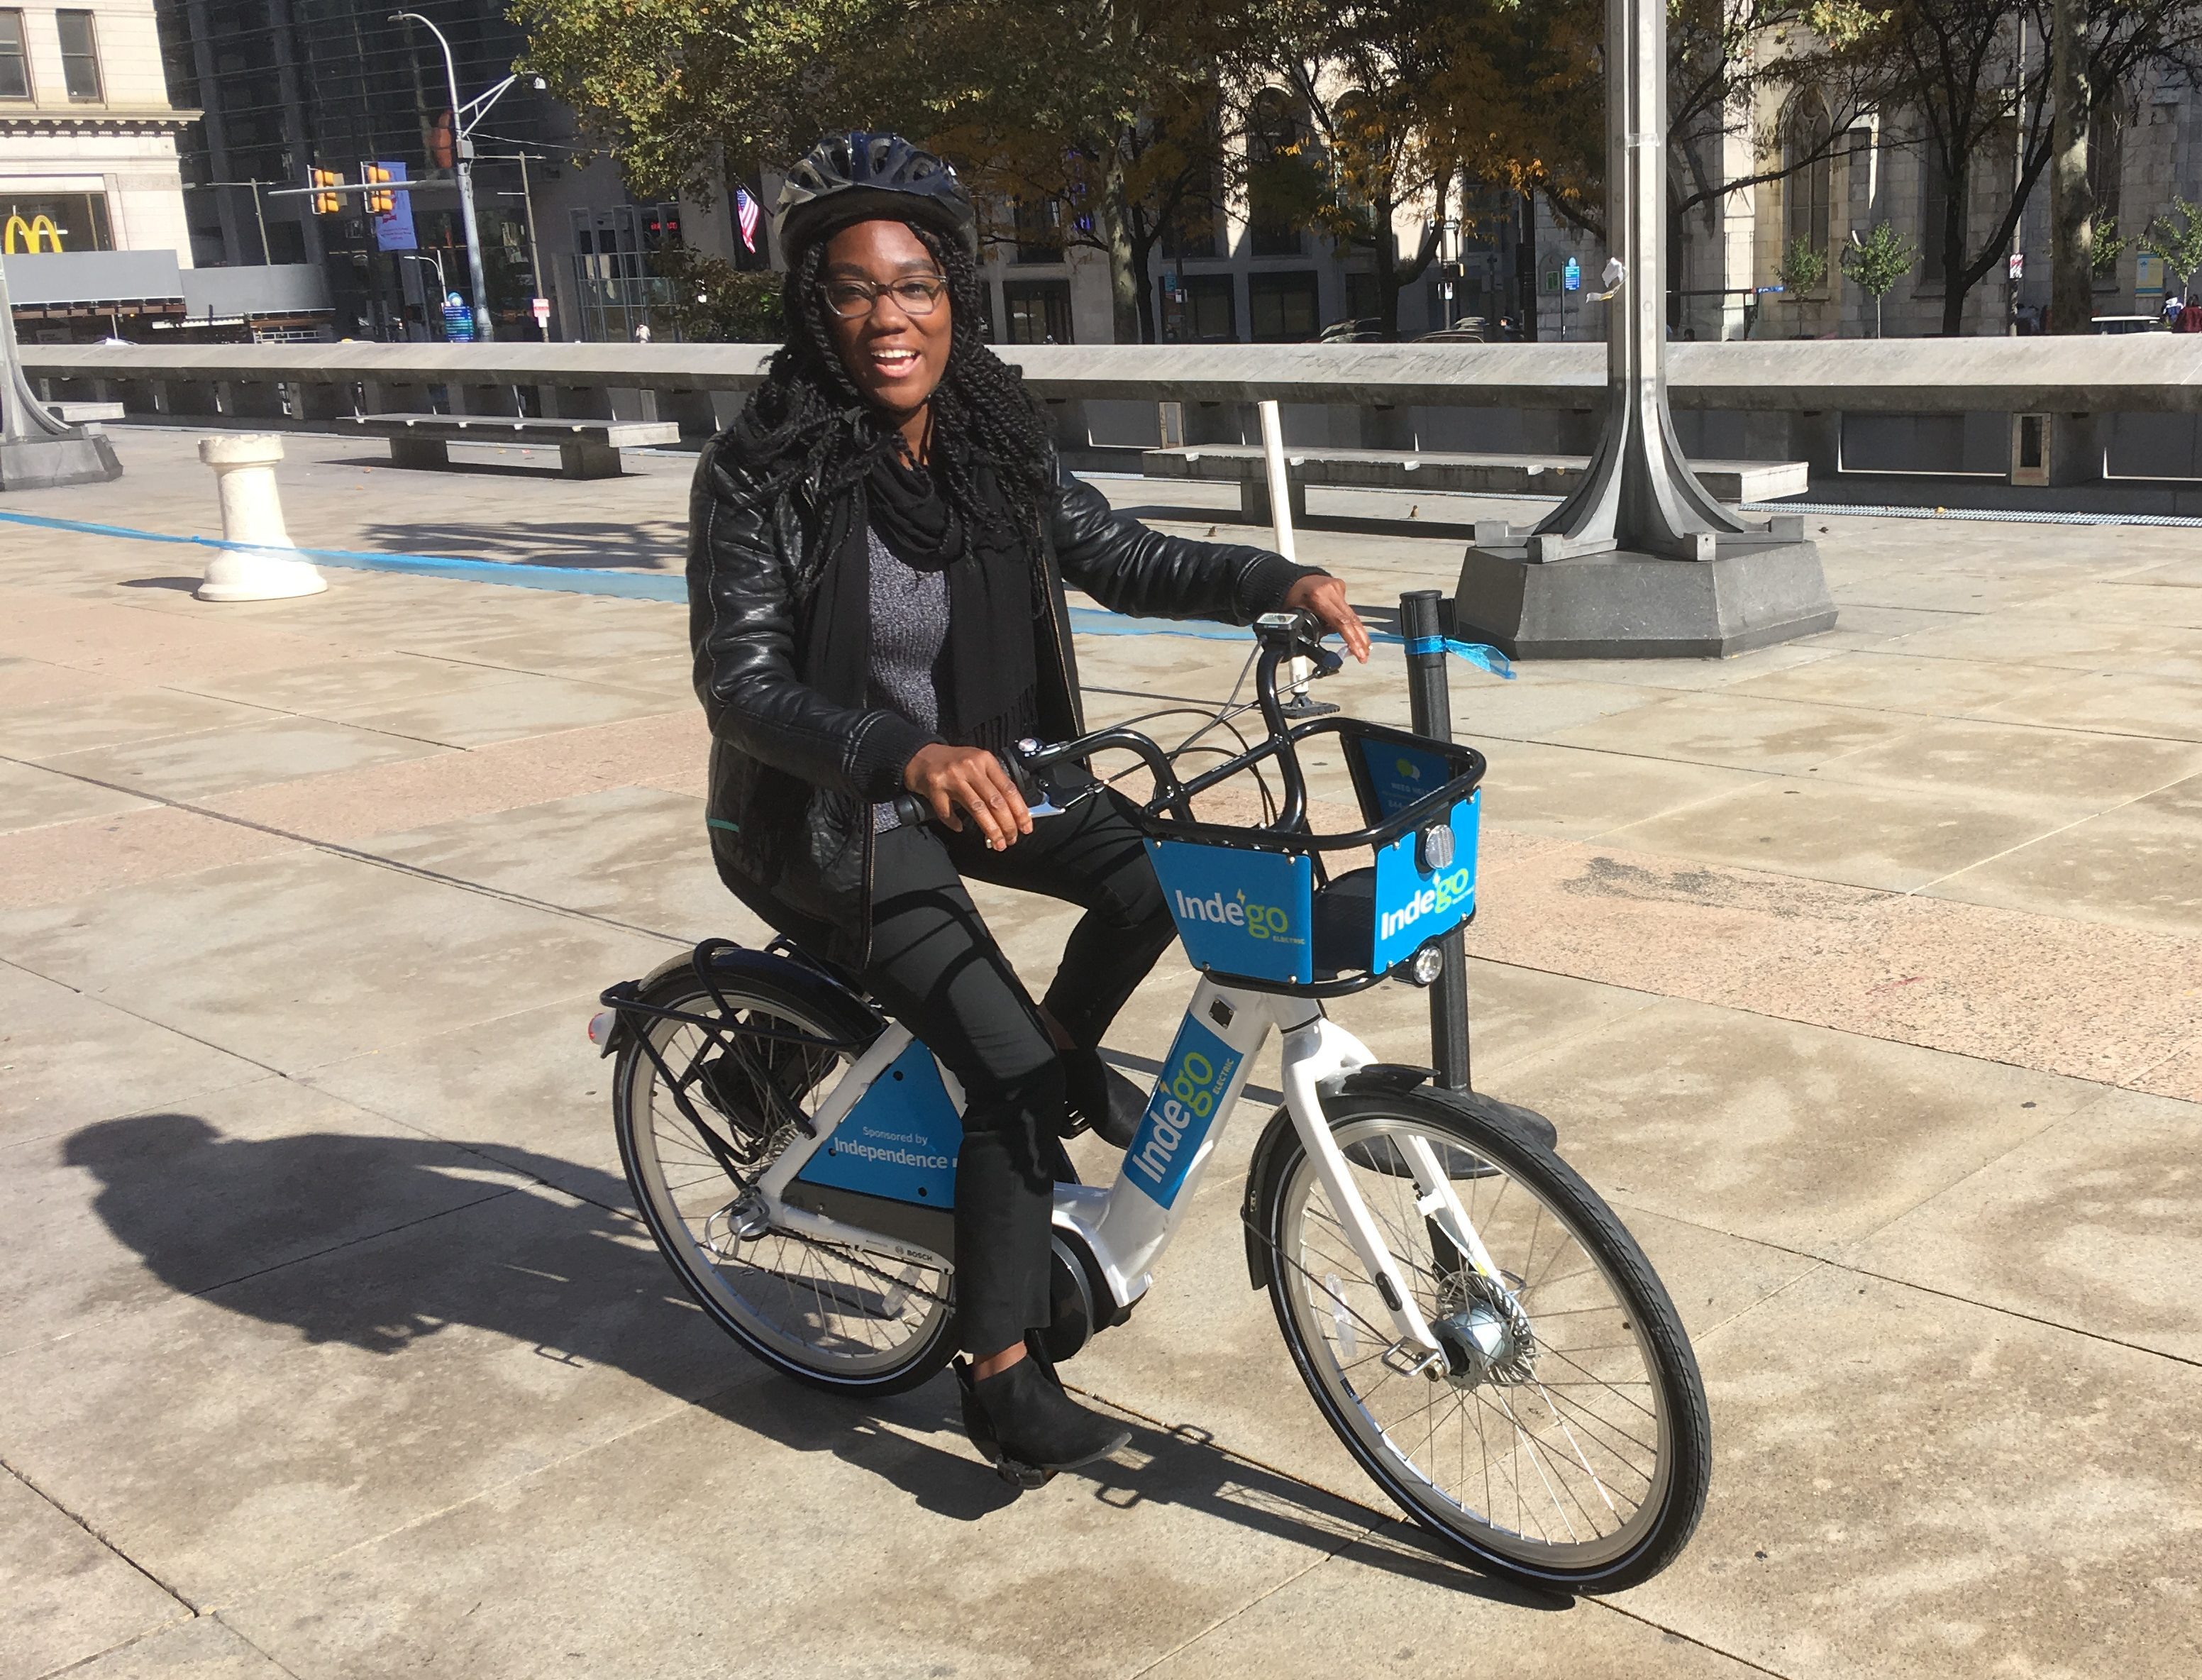 City pulls Indego e-bikes from streets while police search for stolen electronic bicycles